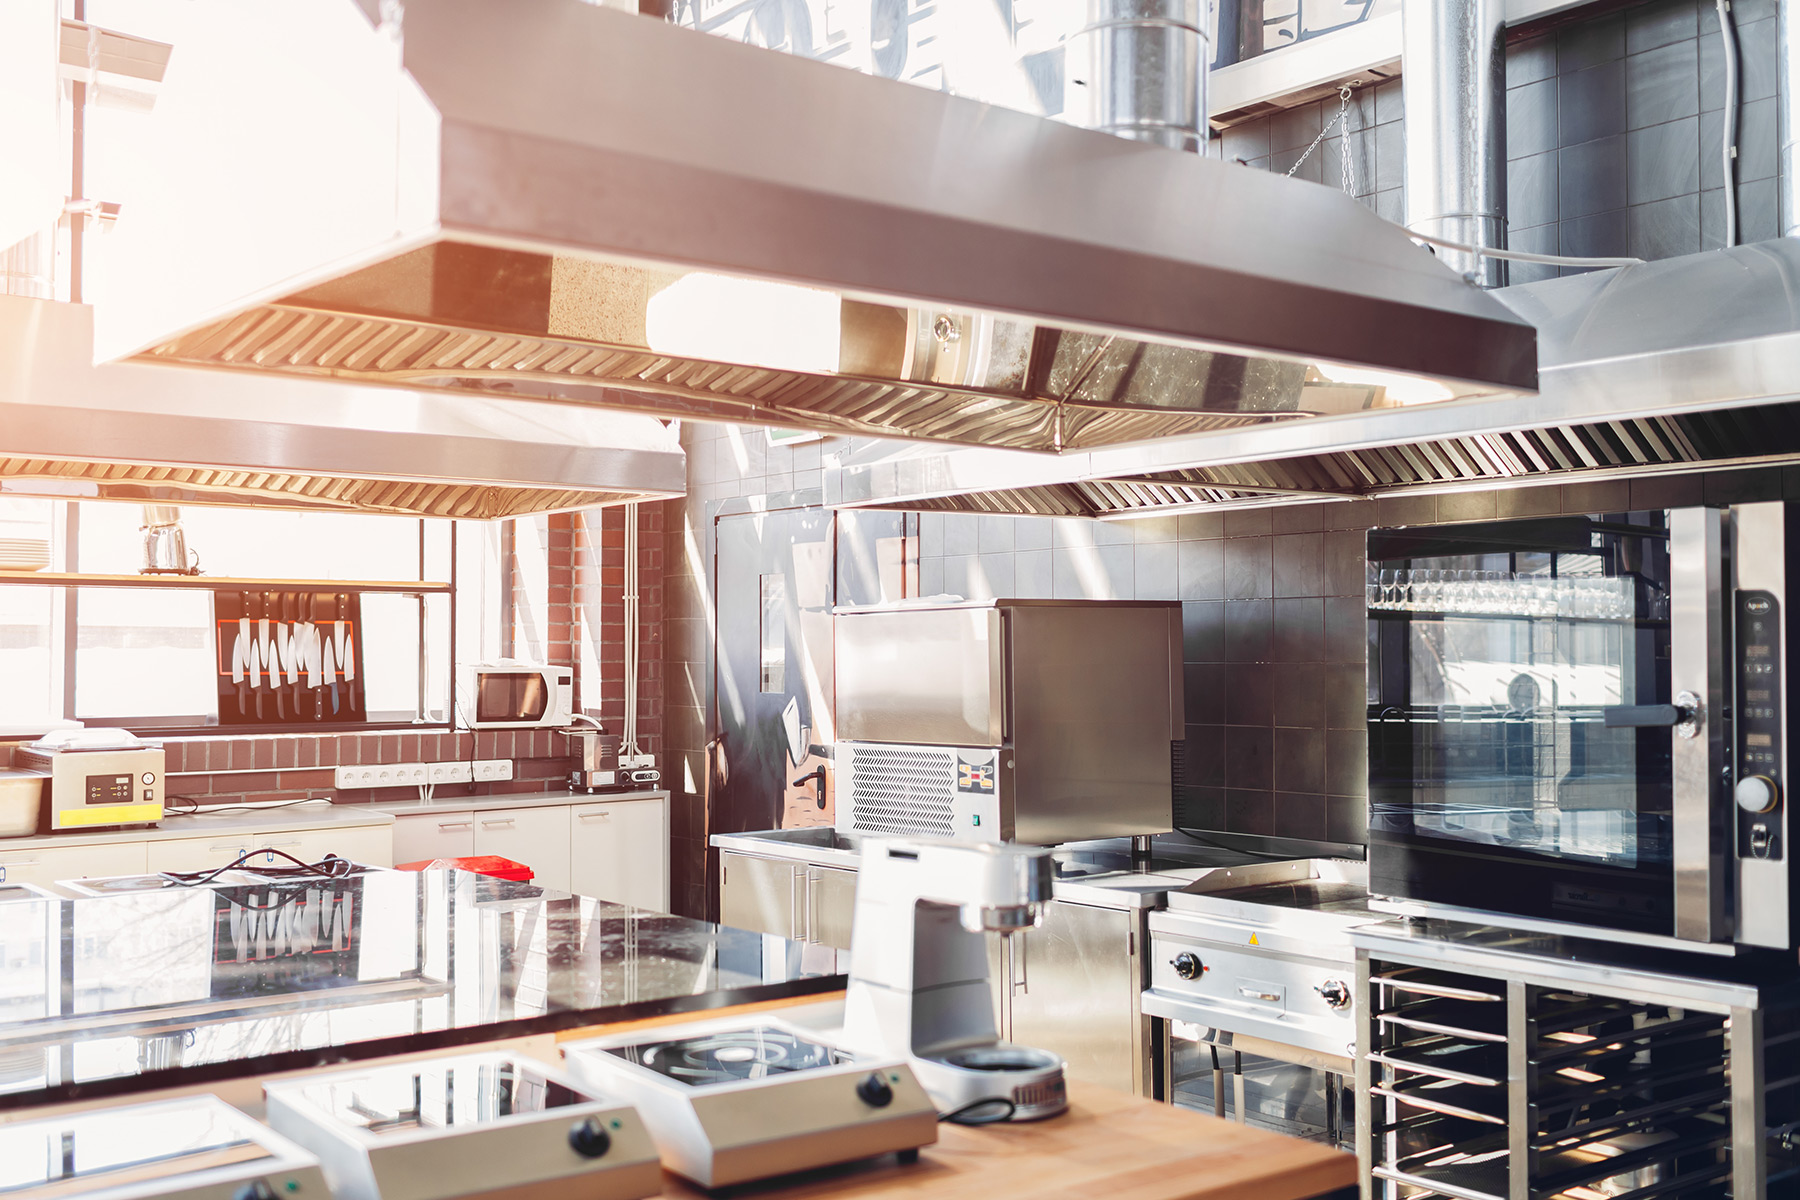 9 Tips for Designing an Effective Hotel Kitchen